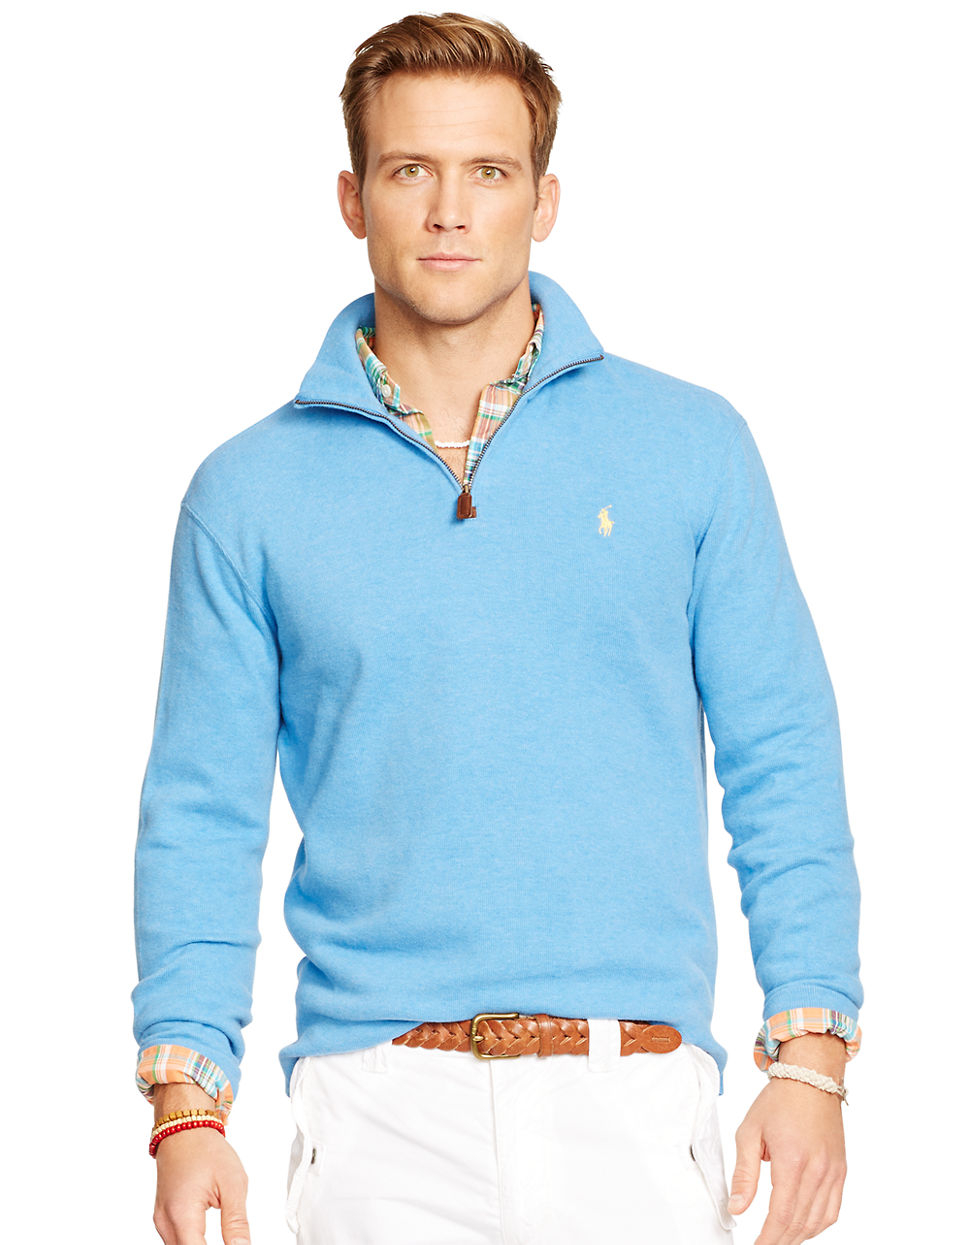 An image relevant to this listing. NEW RALPH LAUREN ...